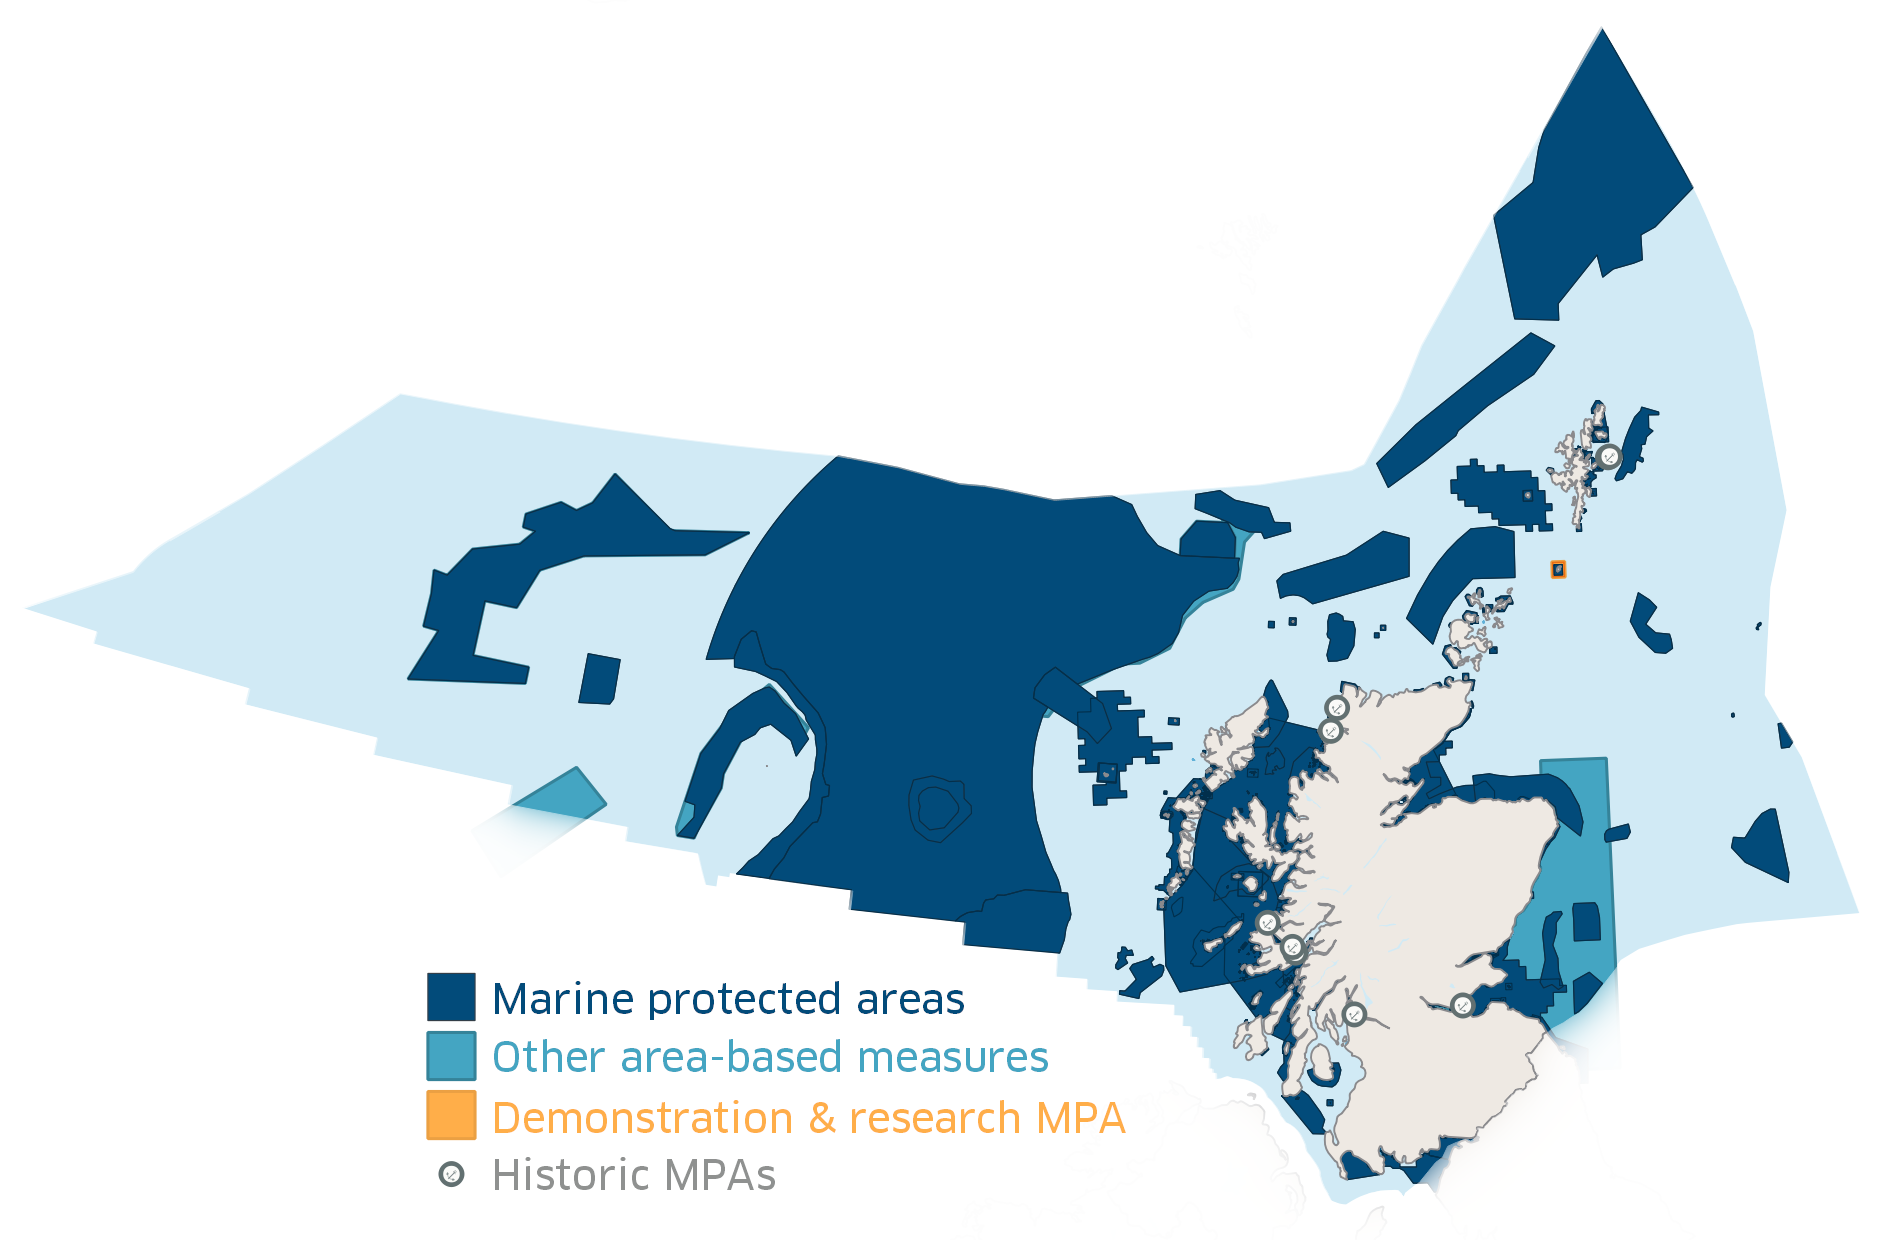 Map showing the Scottish Marine Protected Area network